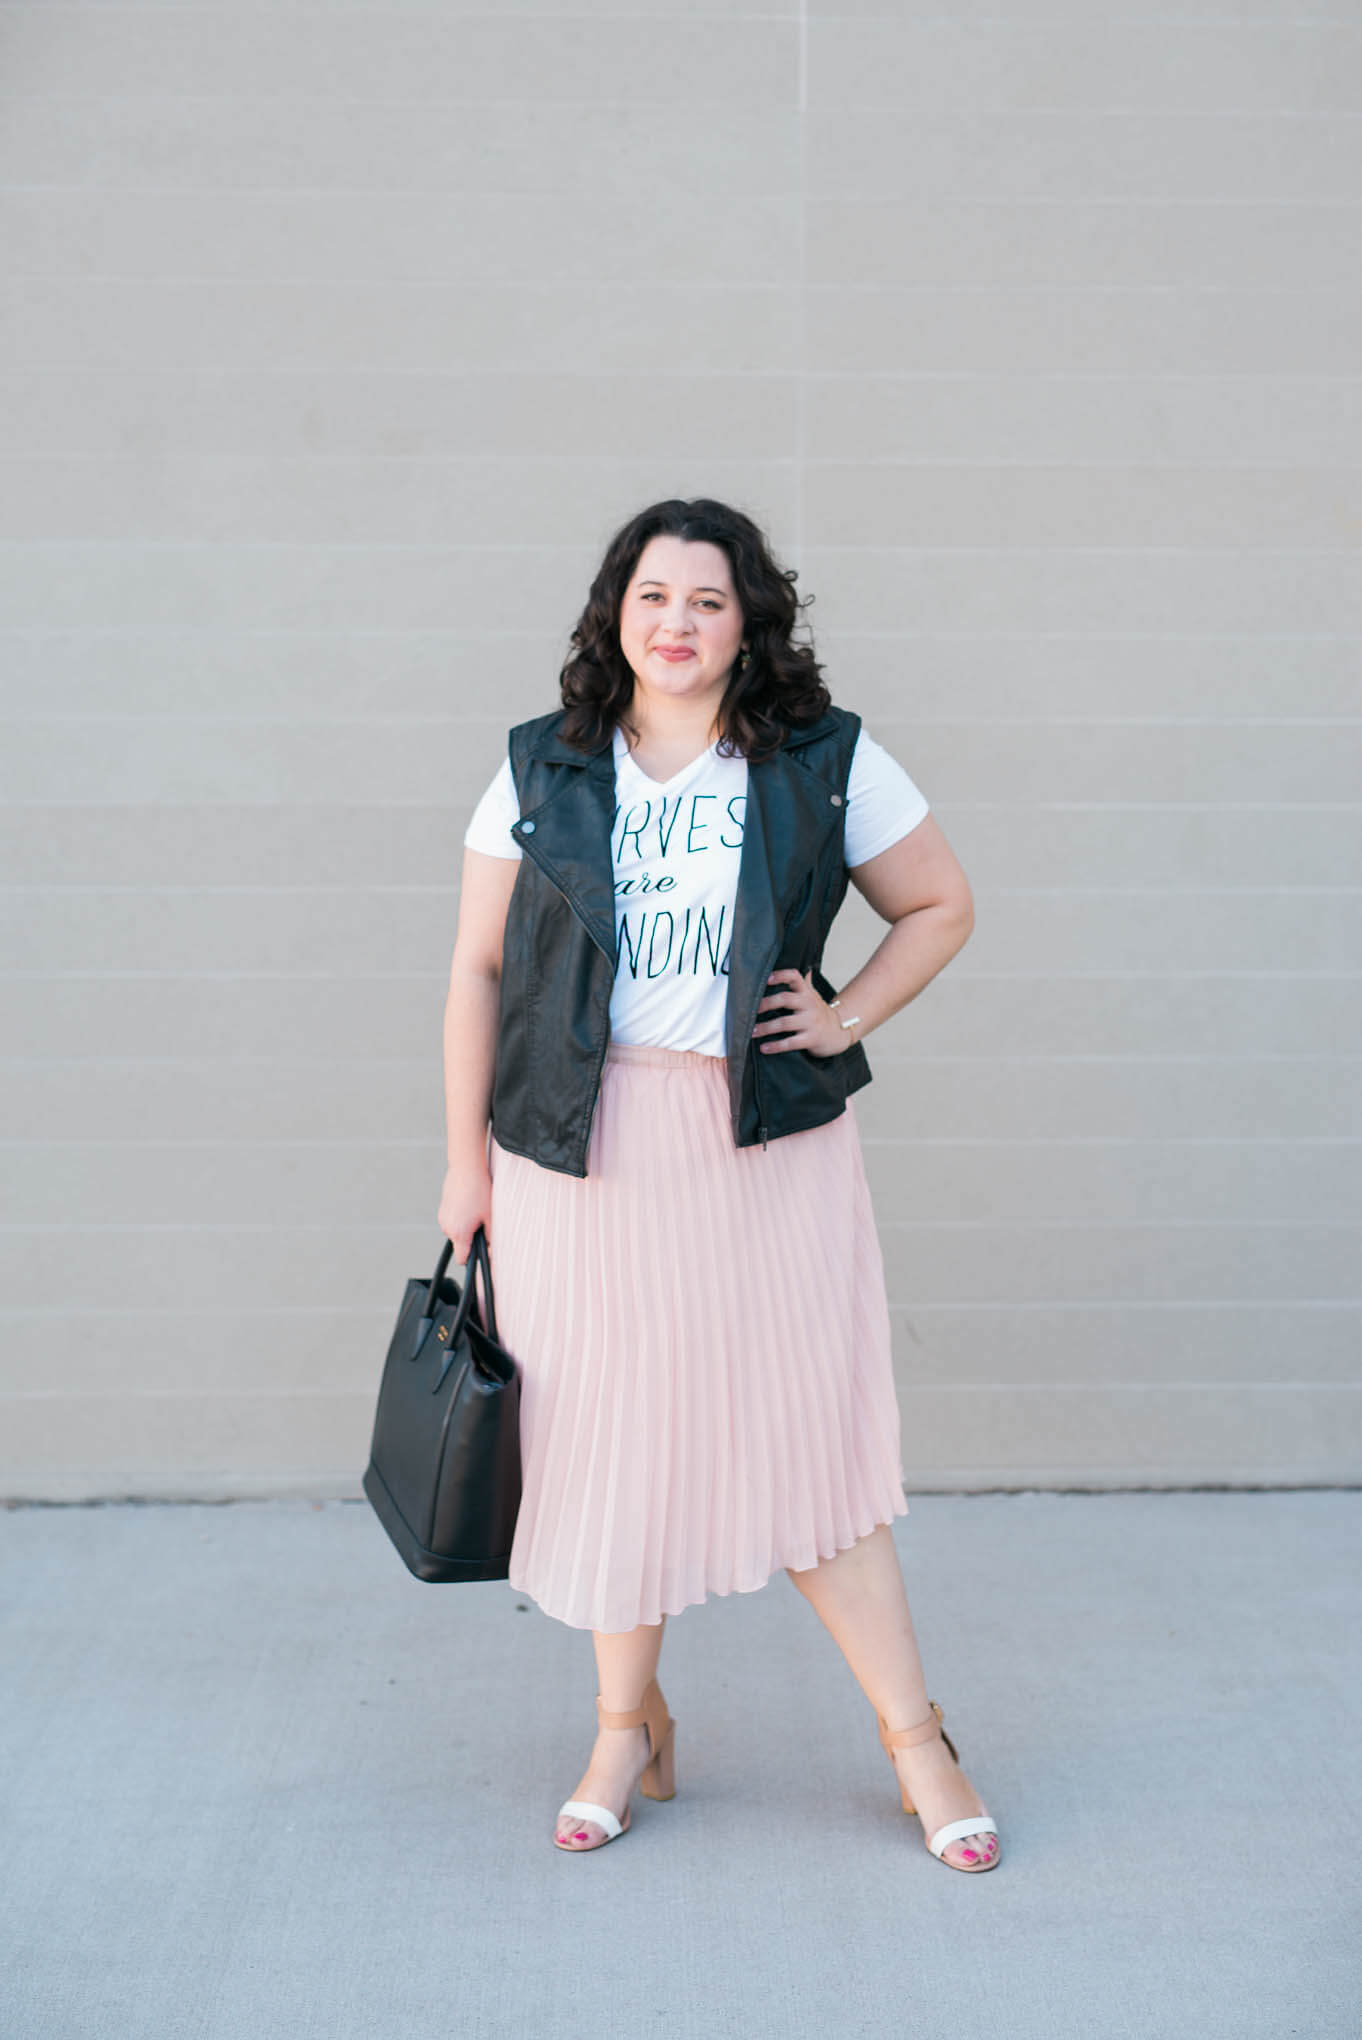 Curves are Trending - Something Gold, Something Blue curvy fashion blog - Body postitivity, love your body, boutique+, jcpenney, what to wear to brunch, girly, summer outfit, prada, cole haan